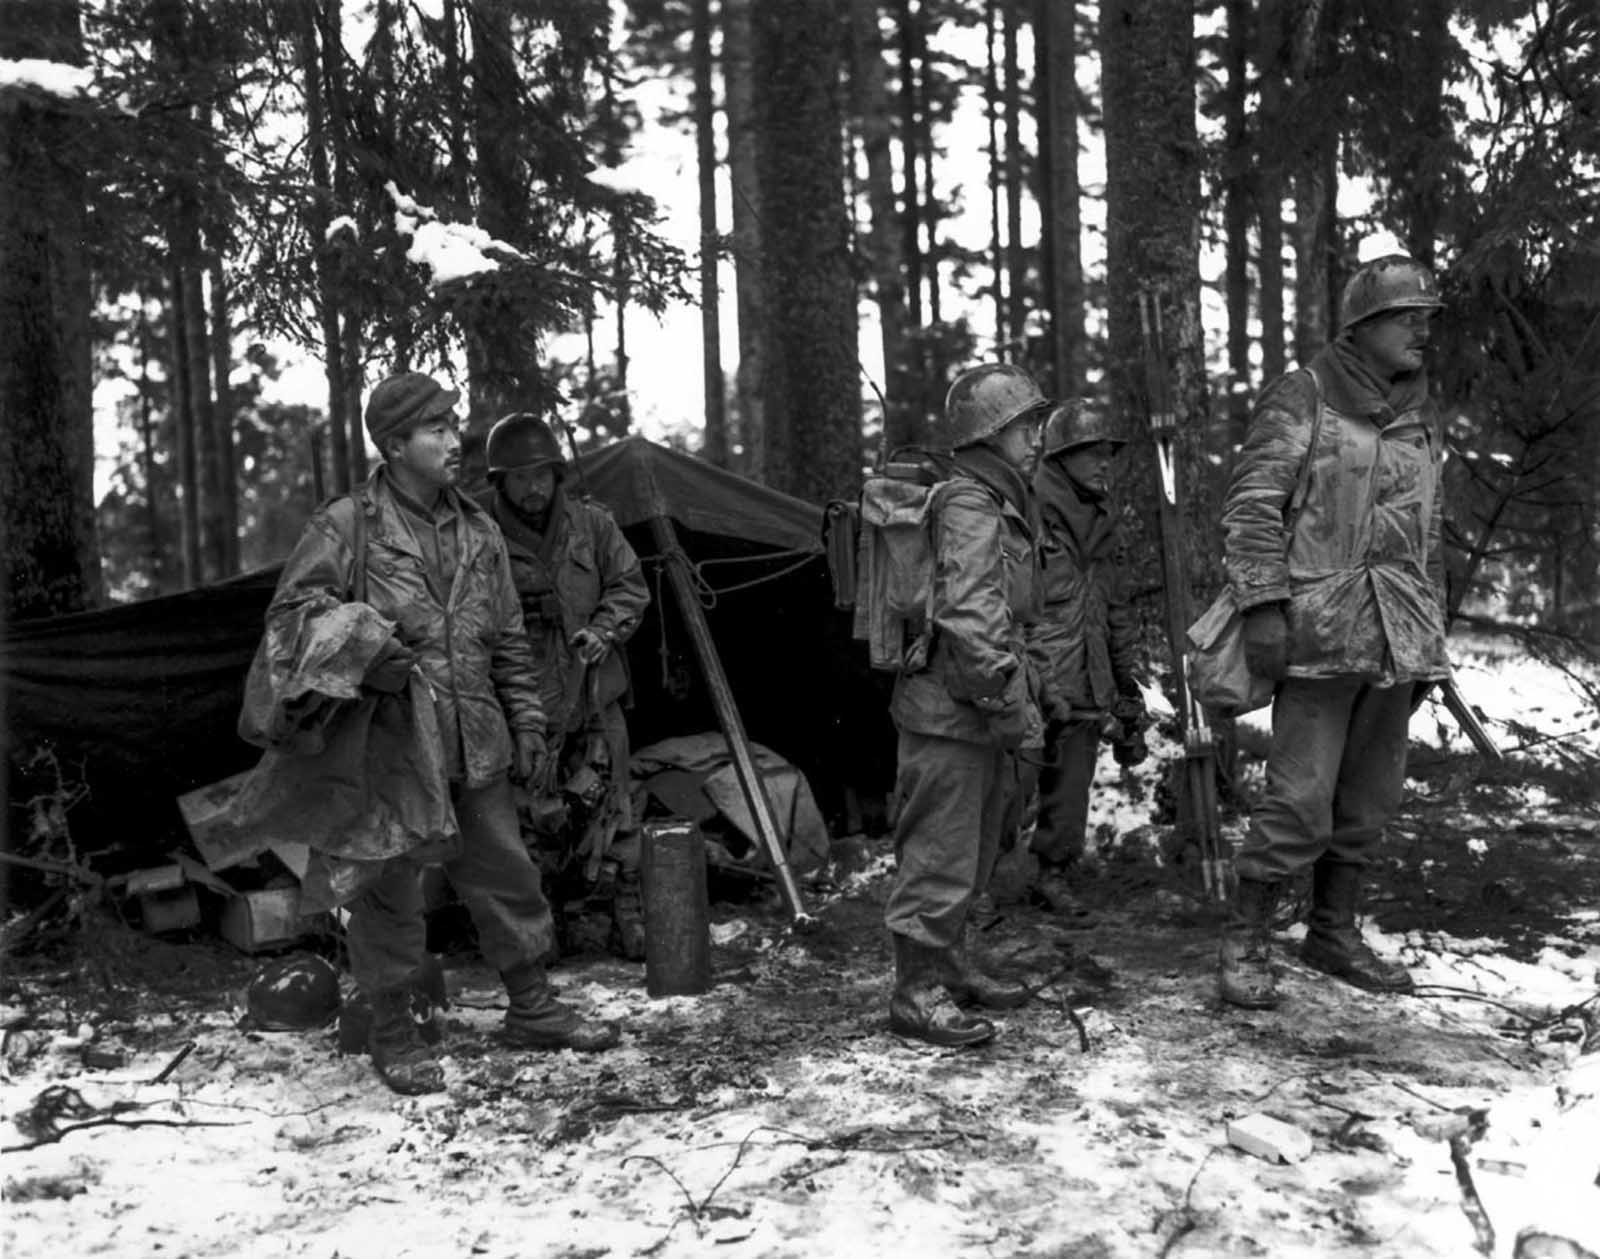 A unit of the 442nd on the front lines near St. Die, France. Nov. 13, 1944.